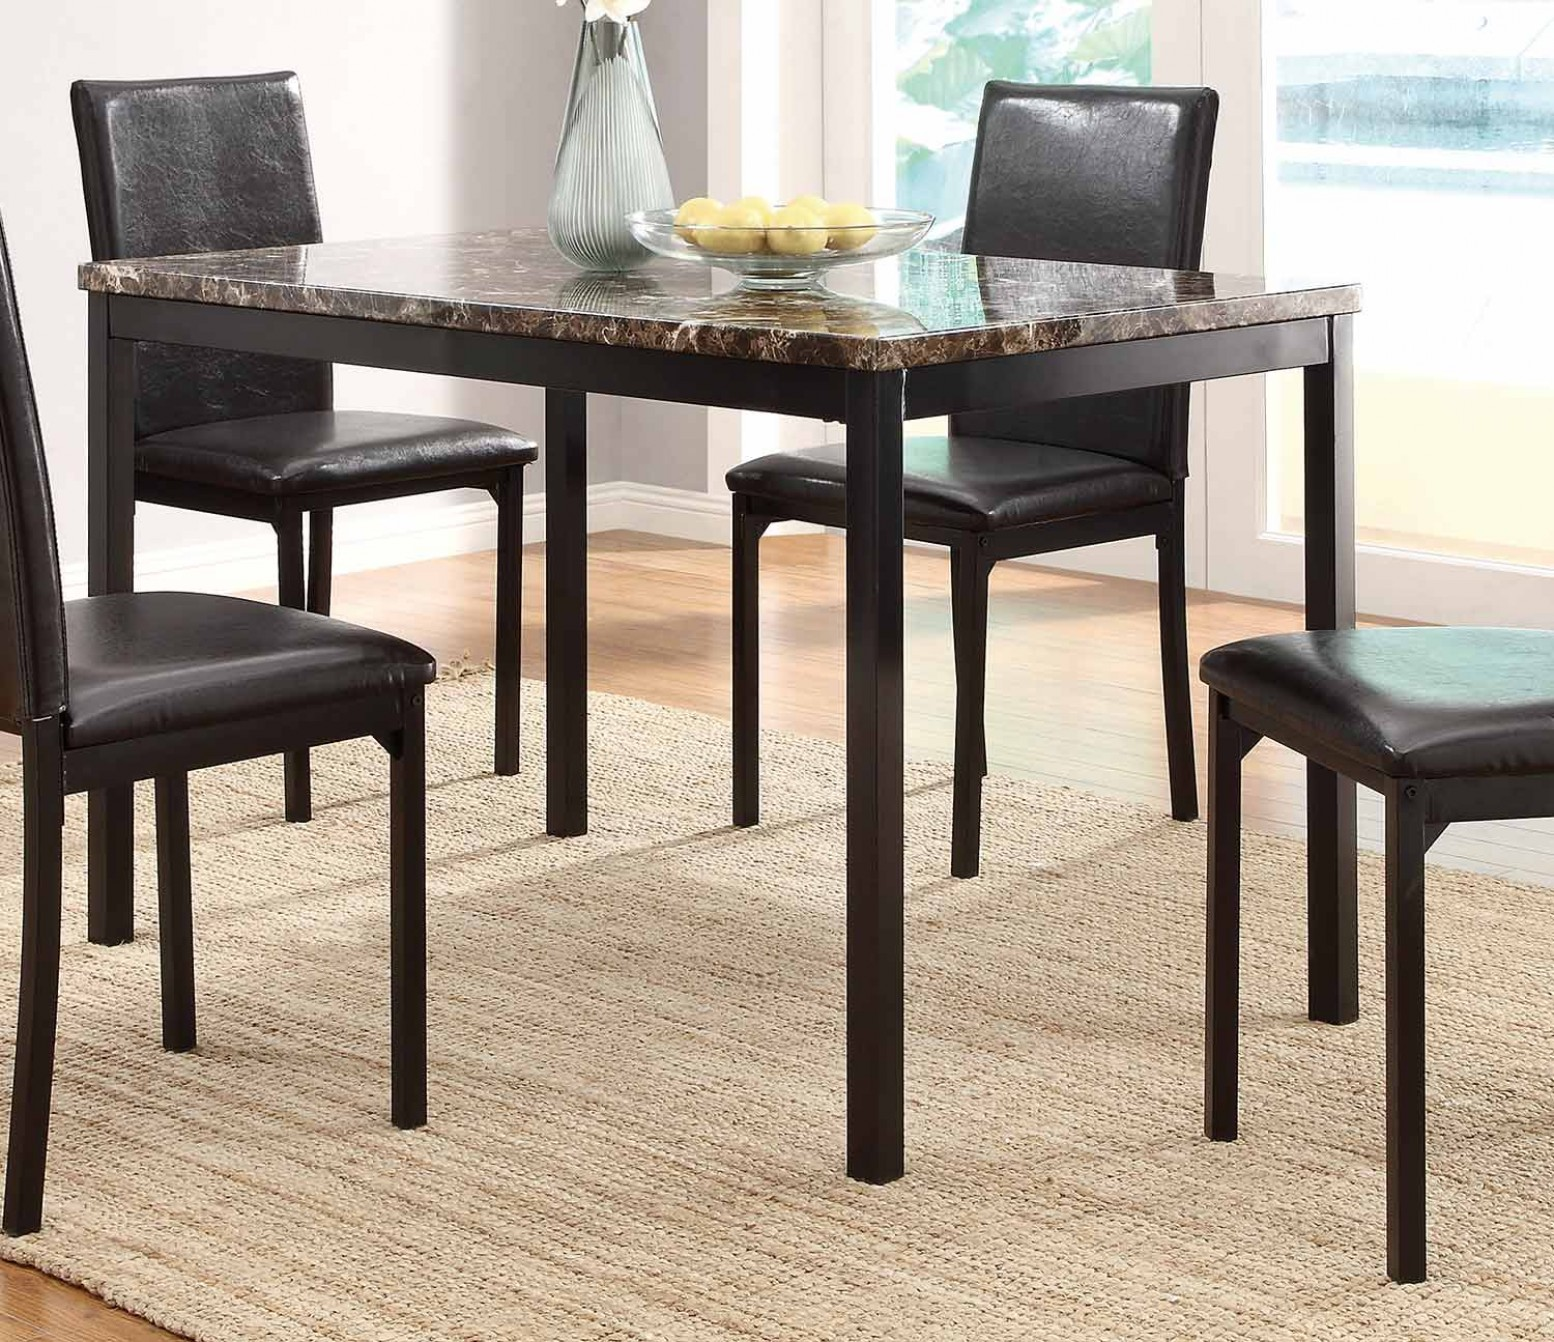 Tempe Classic Rectangular Faux Marble Metal Dining Table Dark Brown Black By Homelegance Sohomod Com